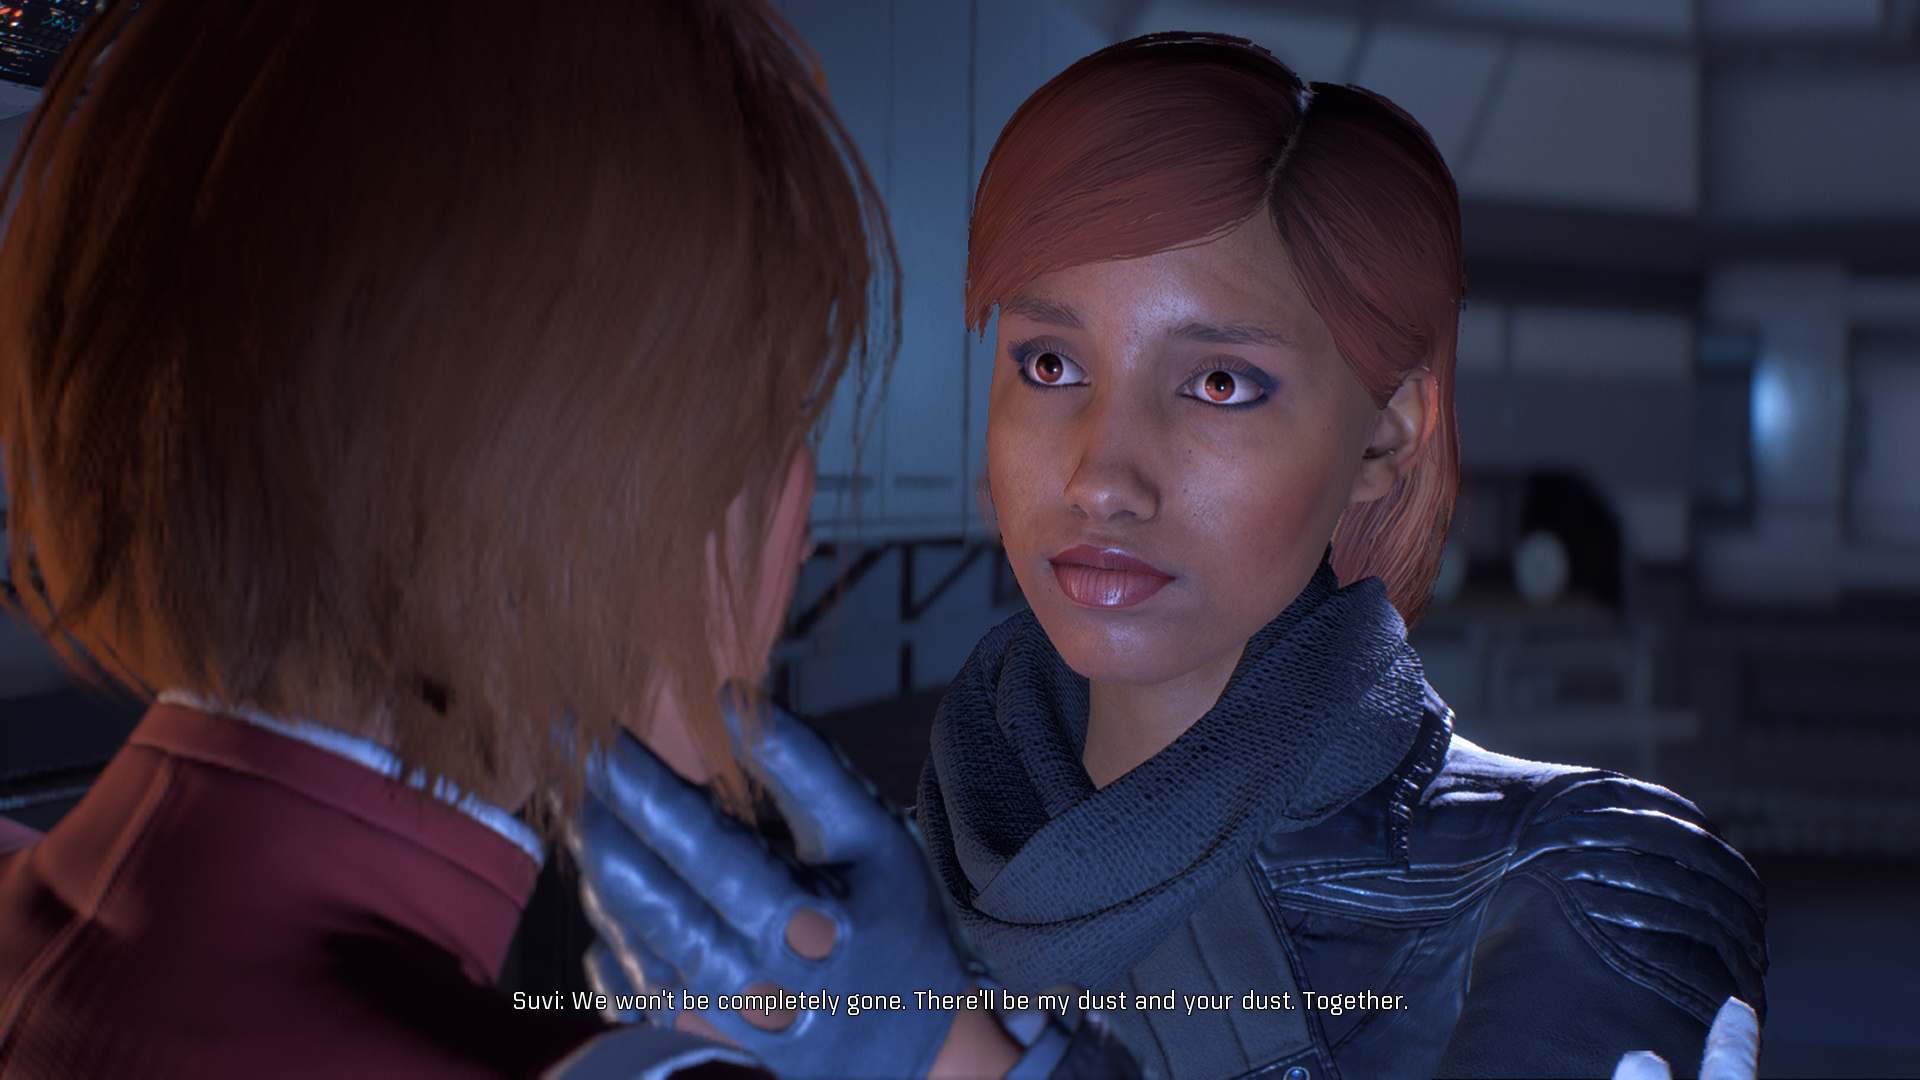 Rhoda 09 Jien Garson at Mass Effect Andromeda Nexus - Mods and Community